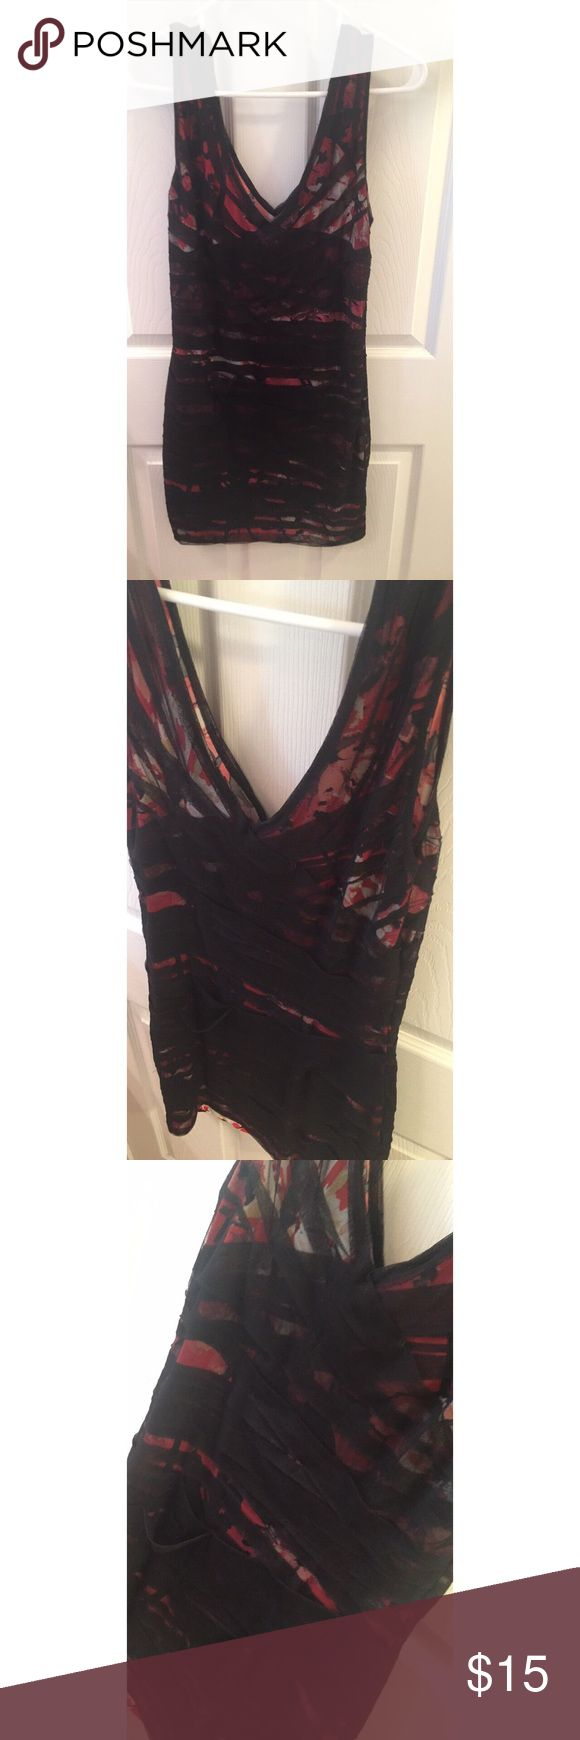 Black mesh red floral bodycon dress Pair with a pair of combat boots and a black leather jacket and you'll nail the 90's grunge look. Or wear on its own with black stilettos! This dress is so unique and fits great. Worn only once. No signs of wear and looks brand new. Forever 21 Dresses Mini